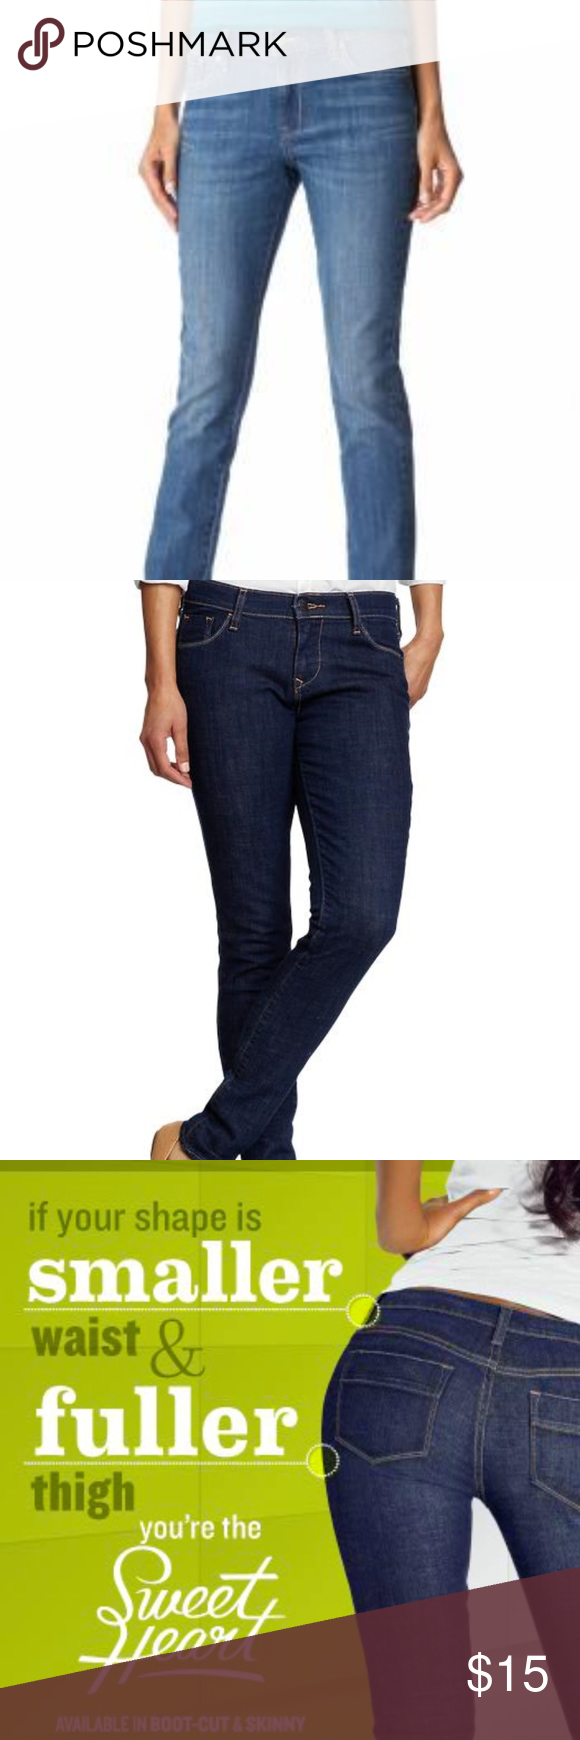 Old Navy Sweetheart Skinny Jeans Old Navy Sweetheart Skinny Jeans in  regular wash. Most of us have found the jean that we are the most  comfortable with ... 772f71575